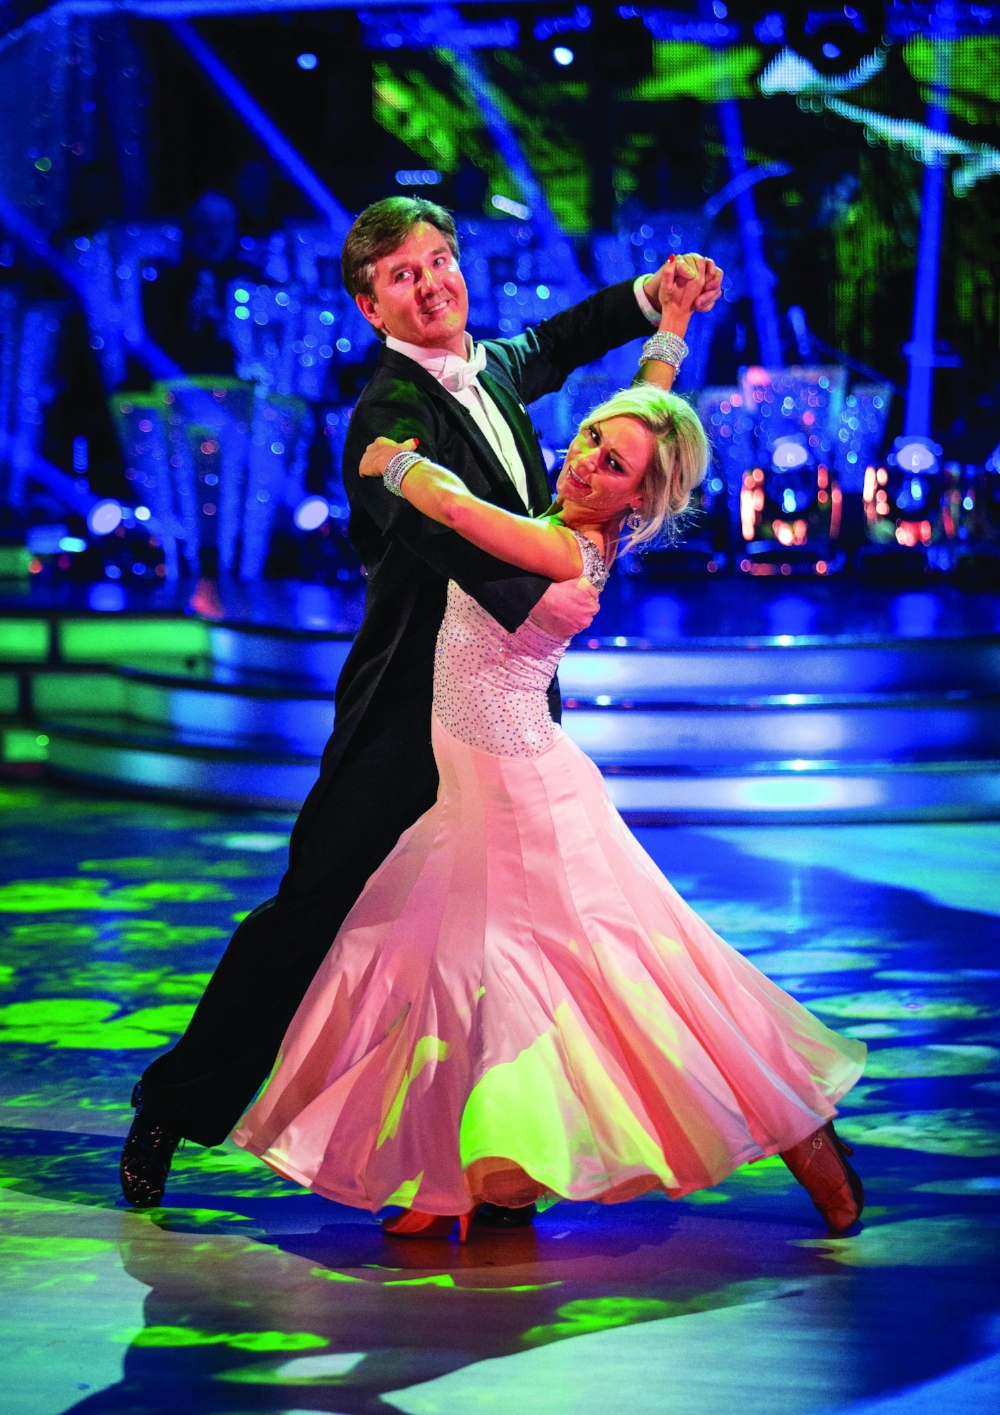 Daniel & Kristina on Strictly Come Dancing BBC (2015)